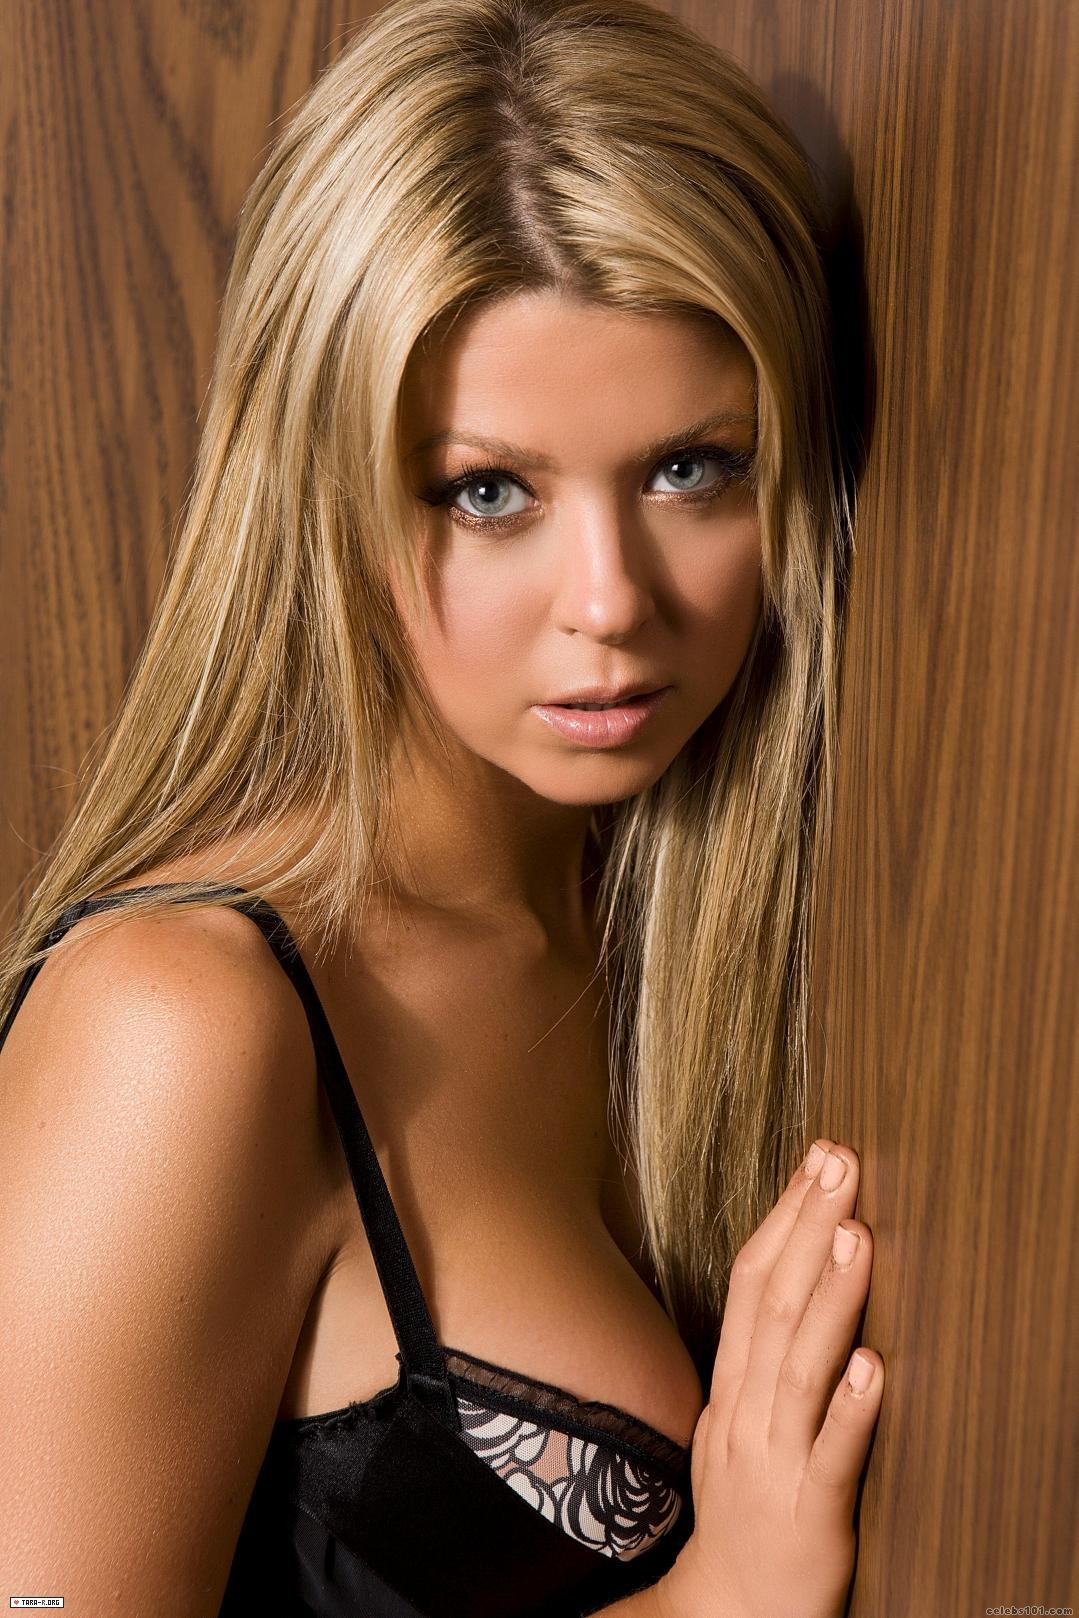 tara reid photo shoots